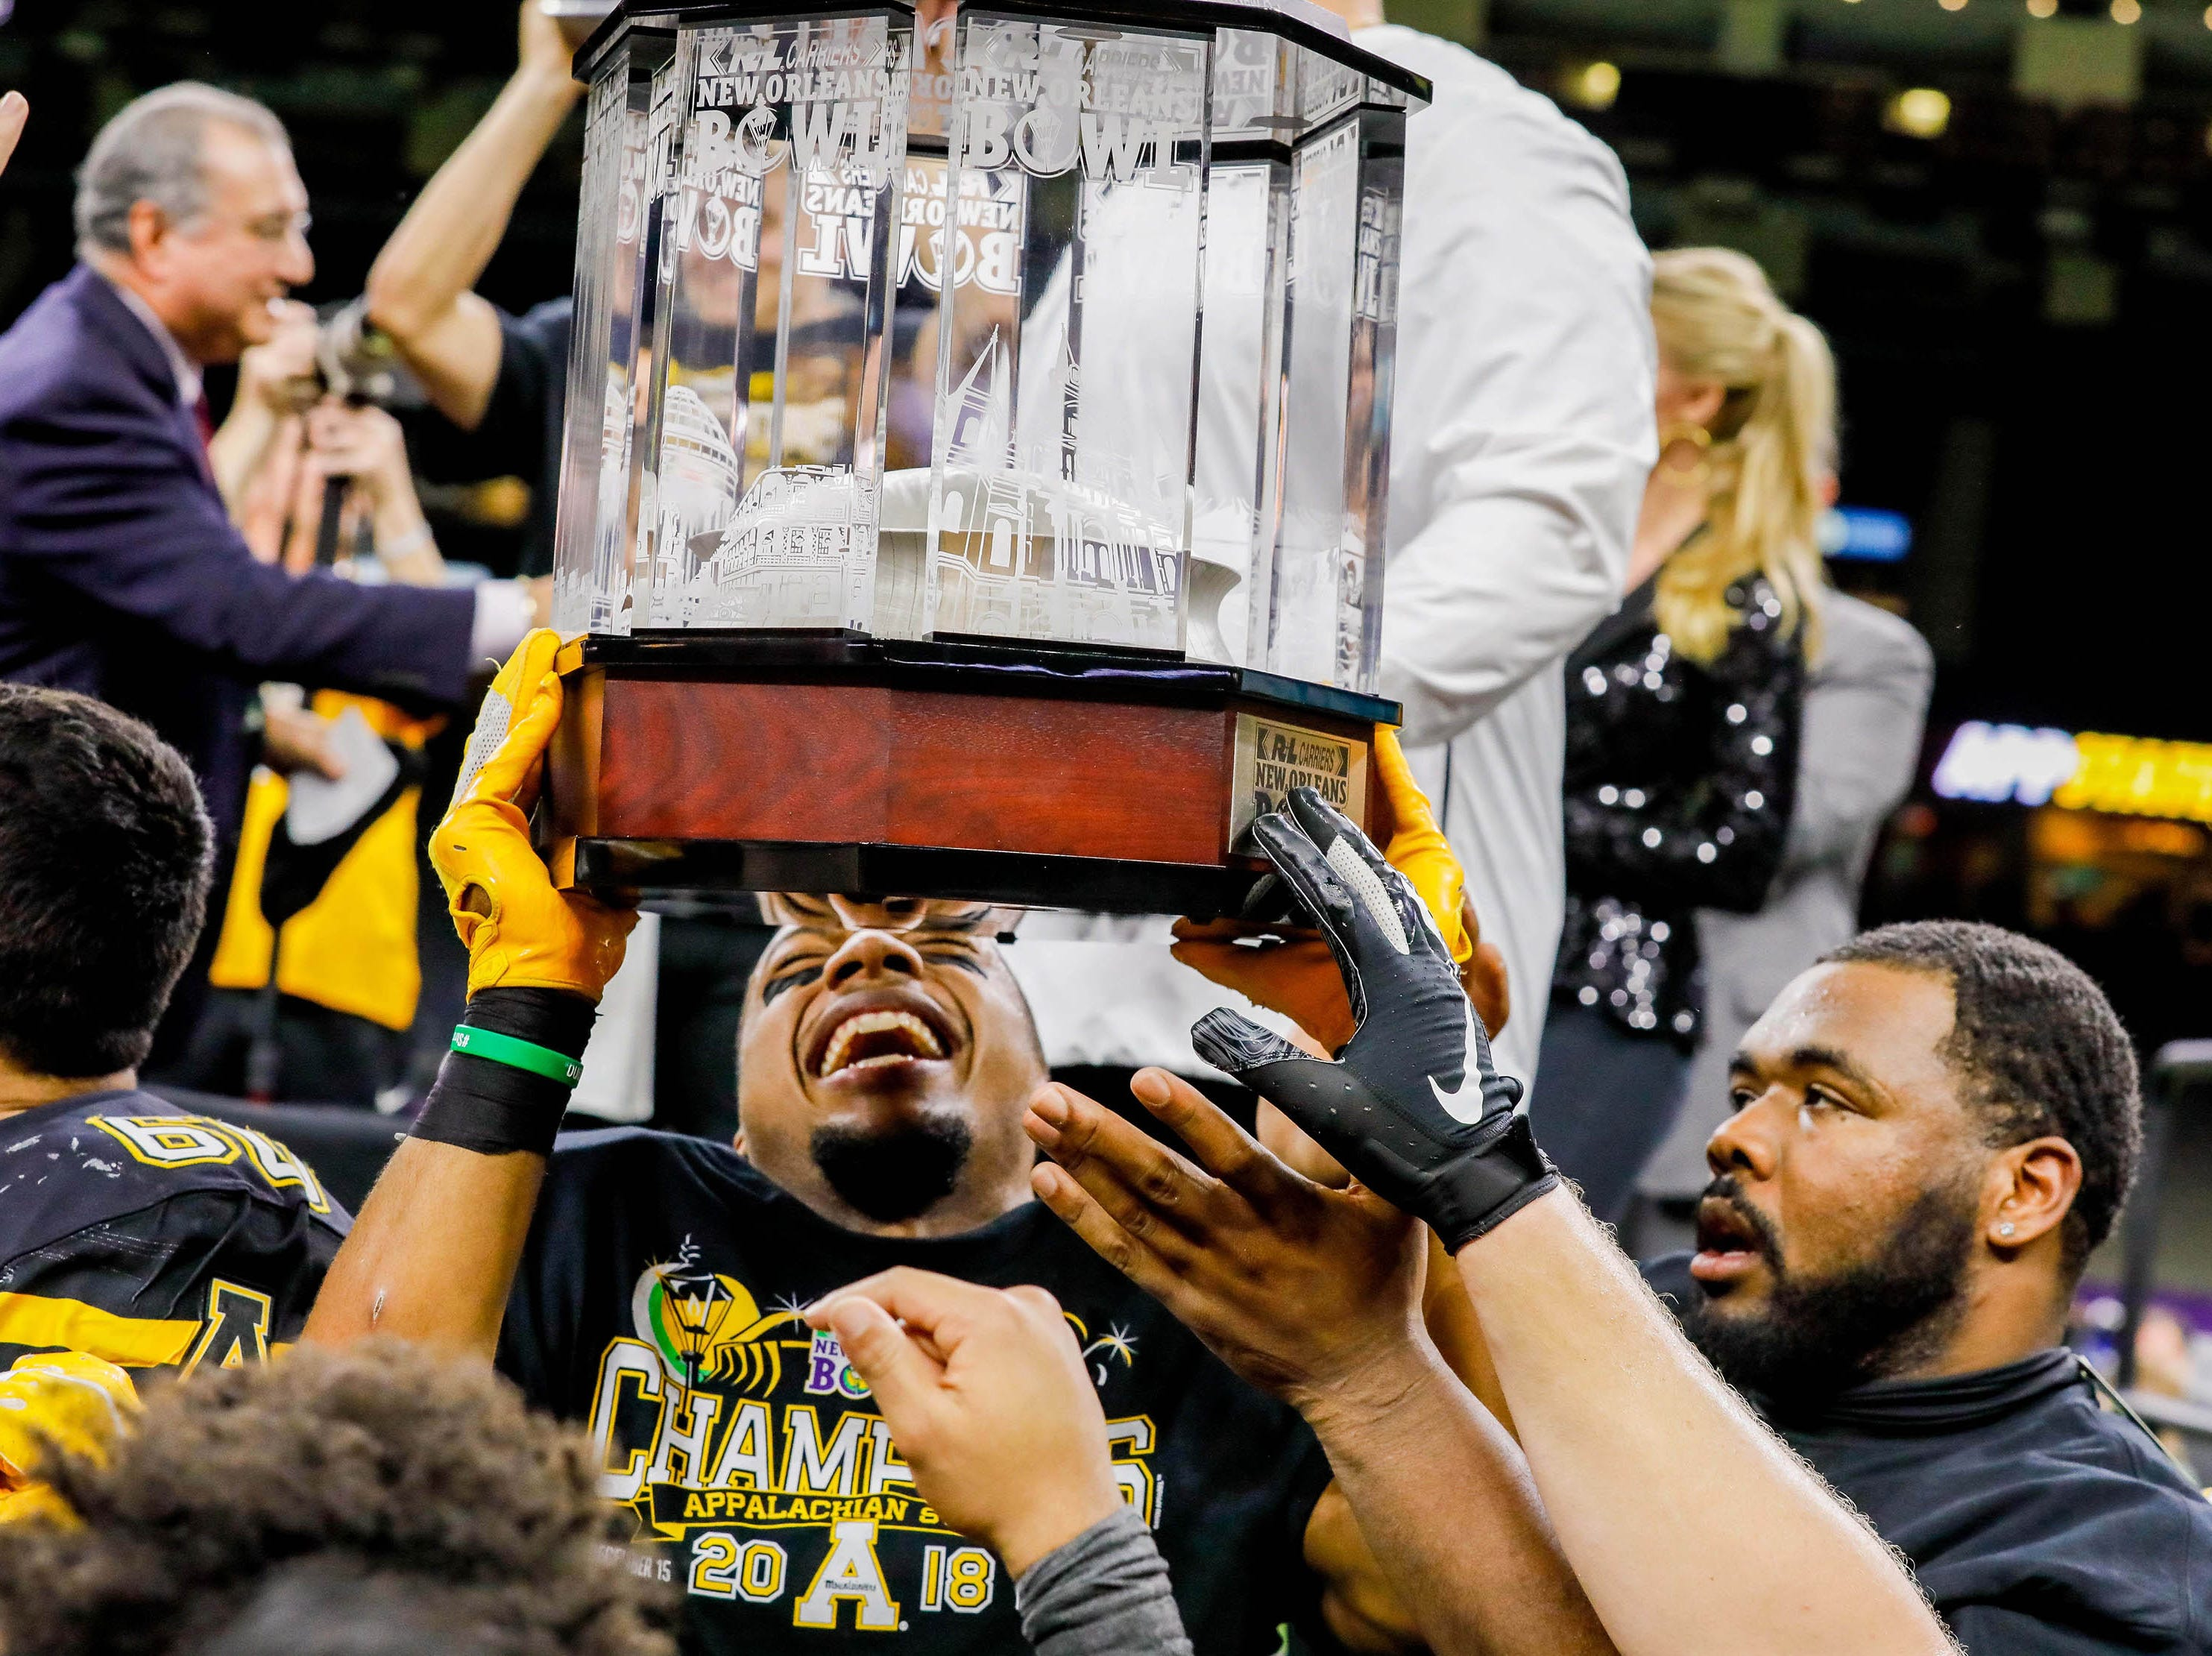 Appalachian State Mountaineers players take turns holding up the trophy after defeating Middle Tennessee Blue Raiders in the New Orleans Bowl.